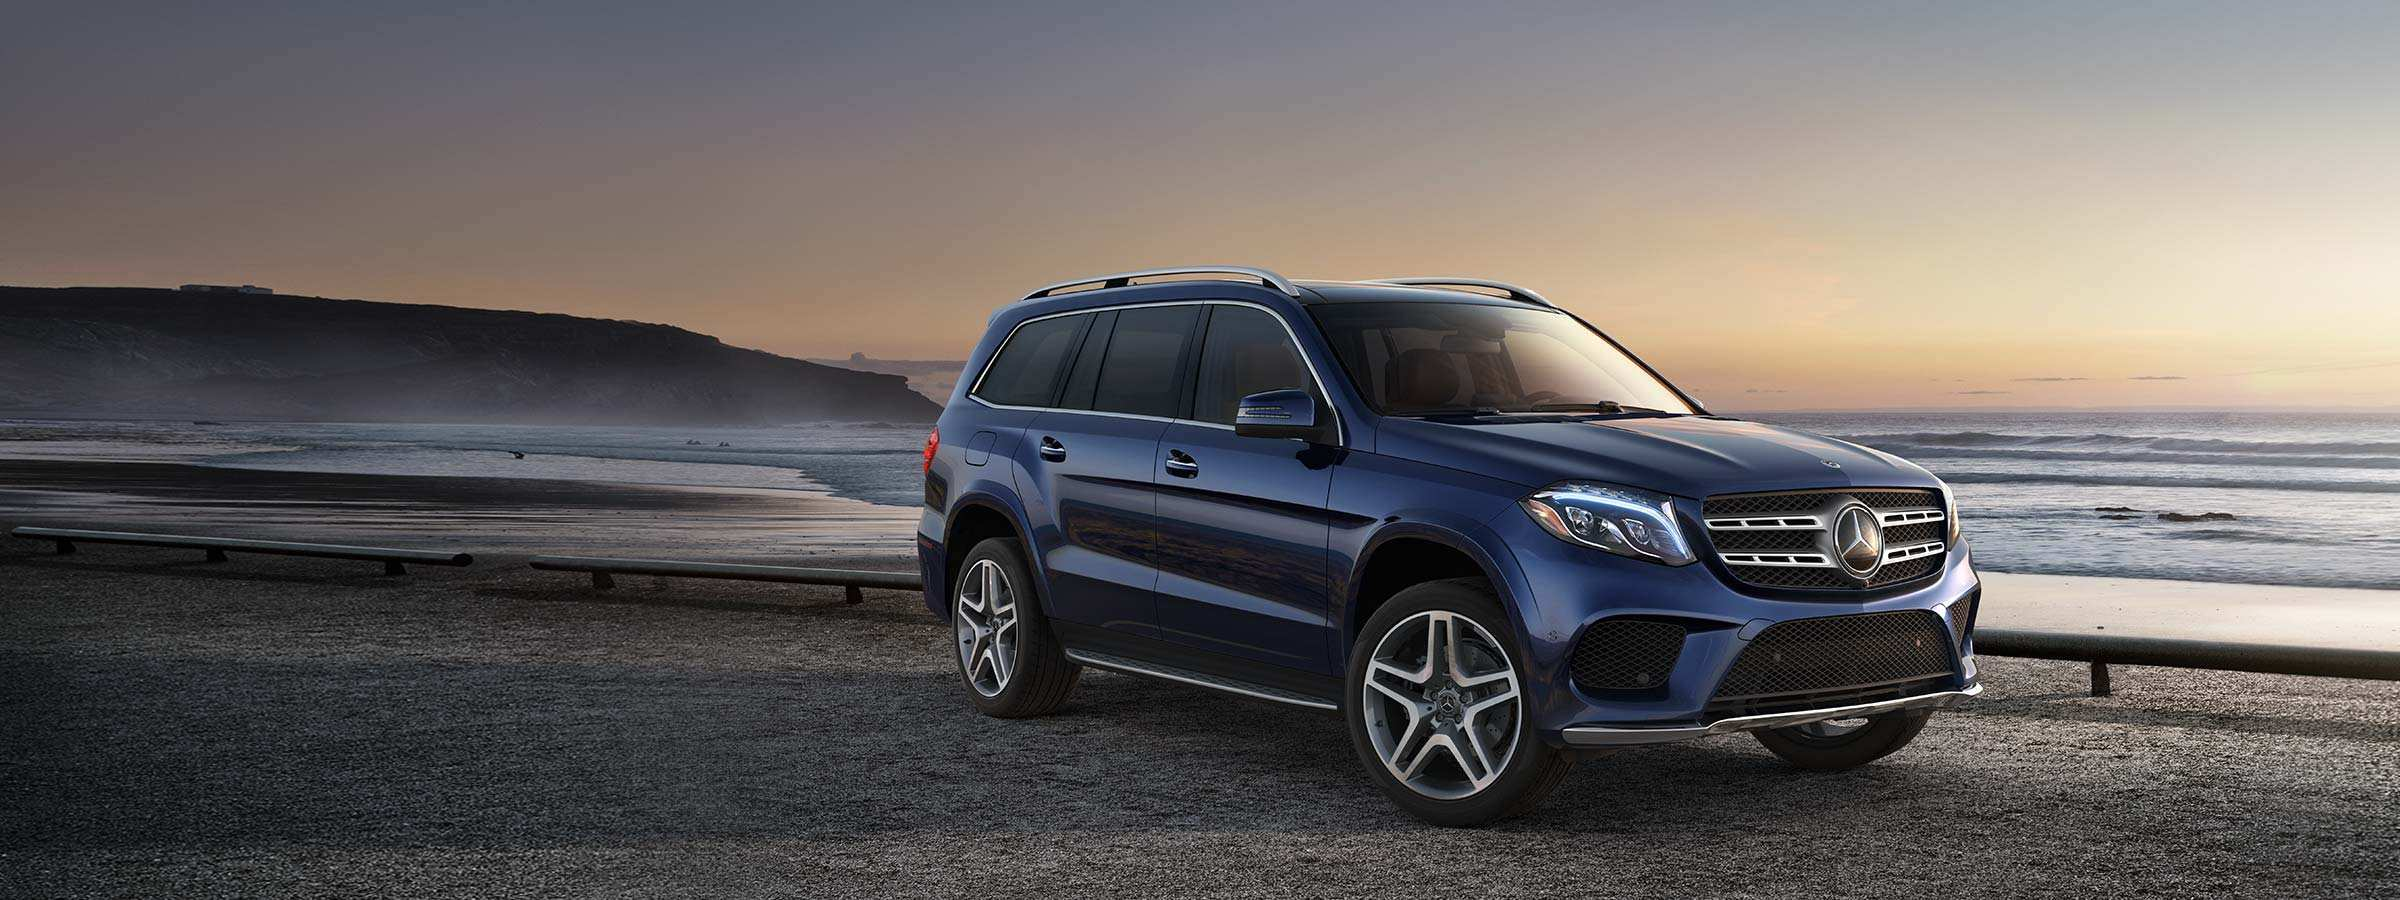 87 New 2019 Mercedes Diesel Suv Price and Review for 2019 Mercedes Diesel Suv